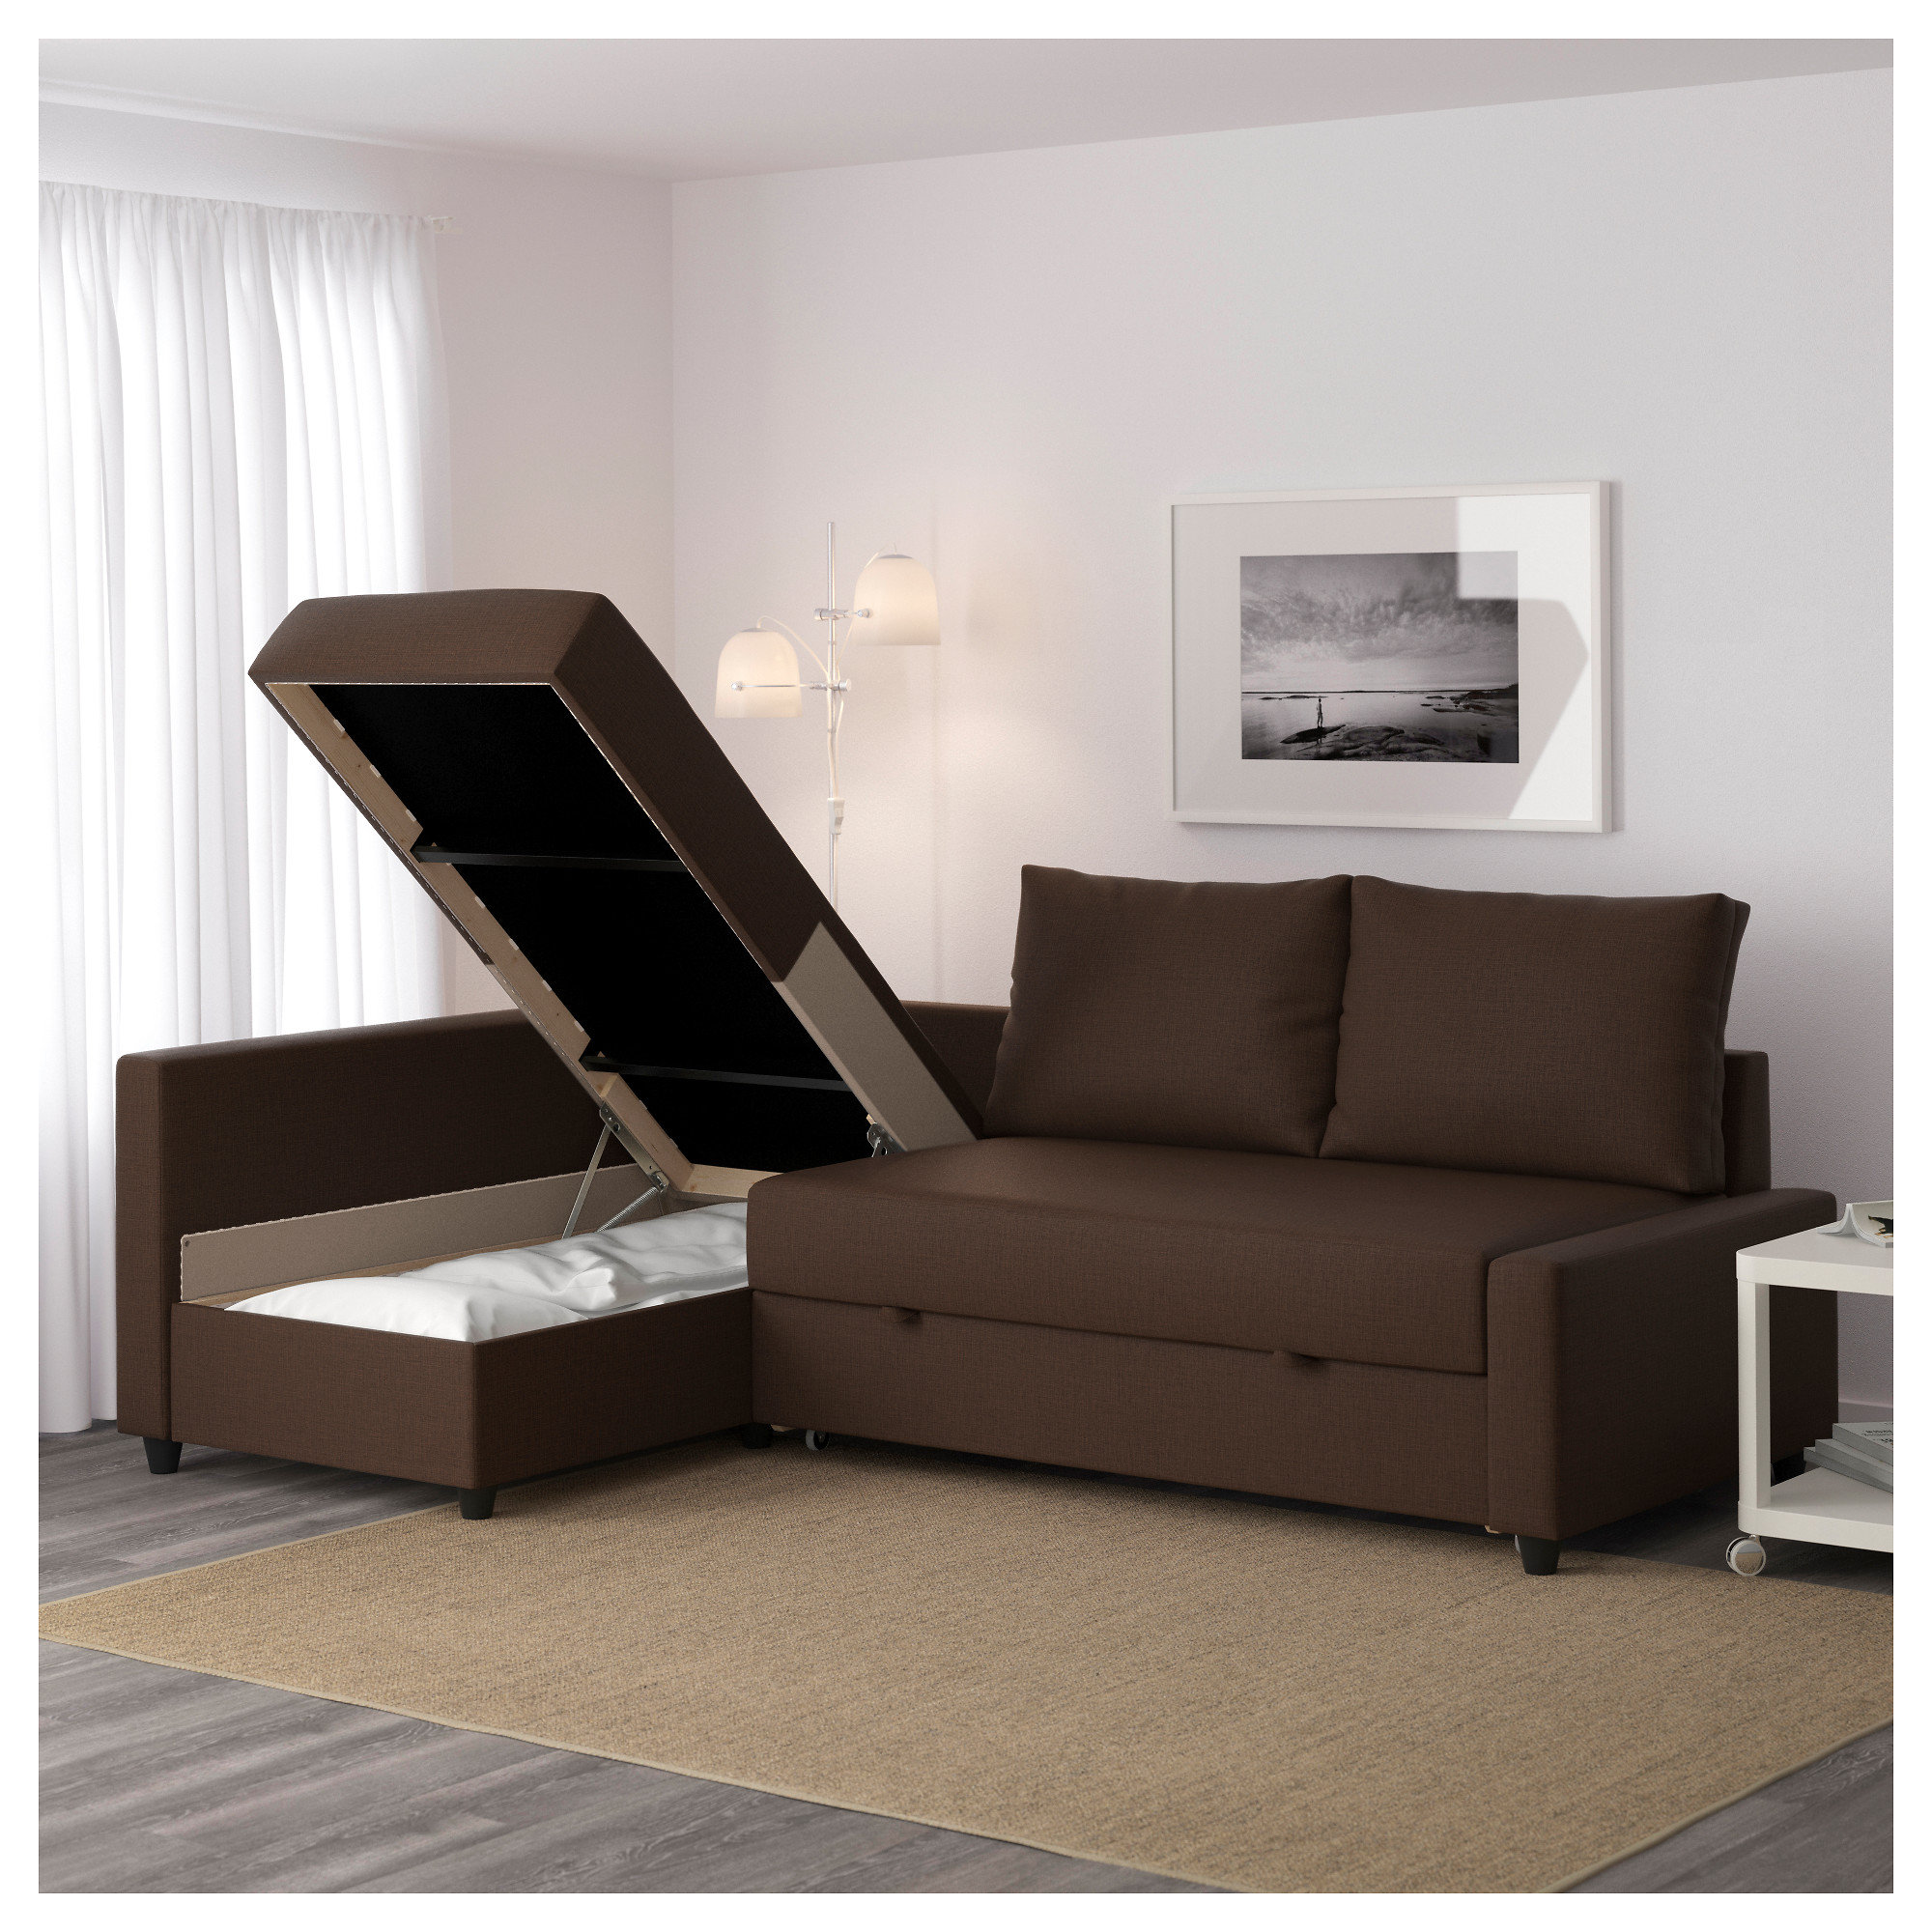 Furniture & Rug Modern Sleeper Sofa Flip Sofa Bed